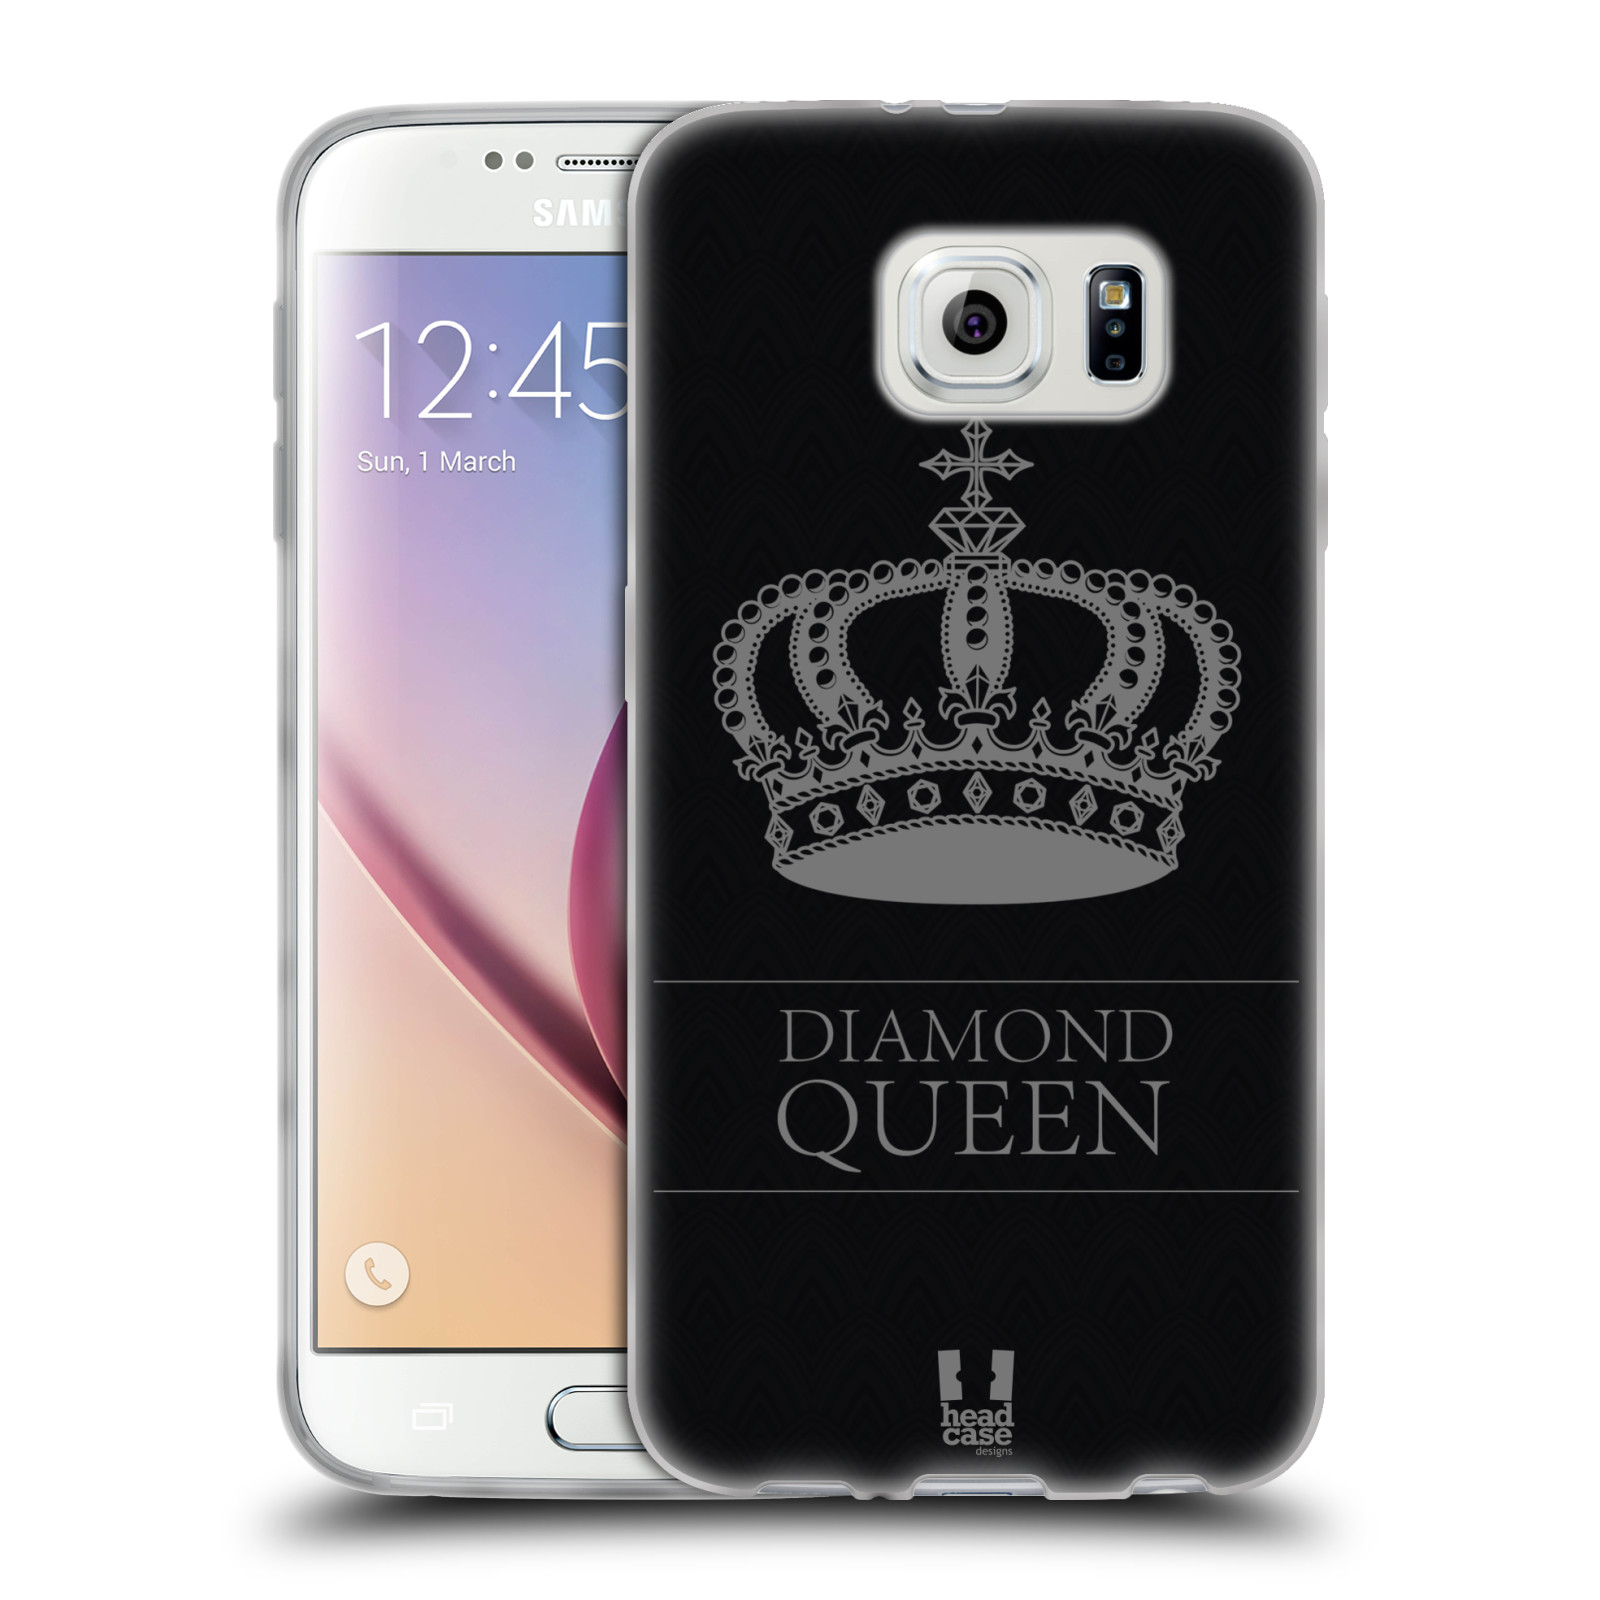 Head case designs diamonds soft gel case for samsung phones 1 for Cell phone cover design ideas